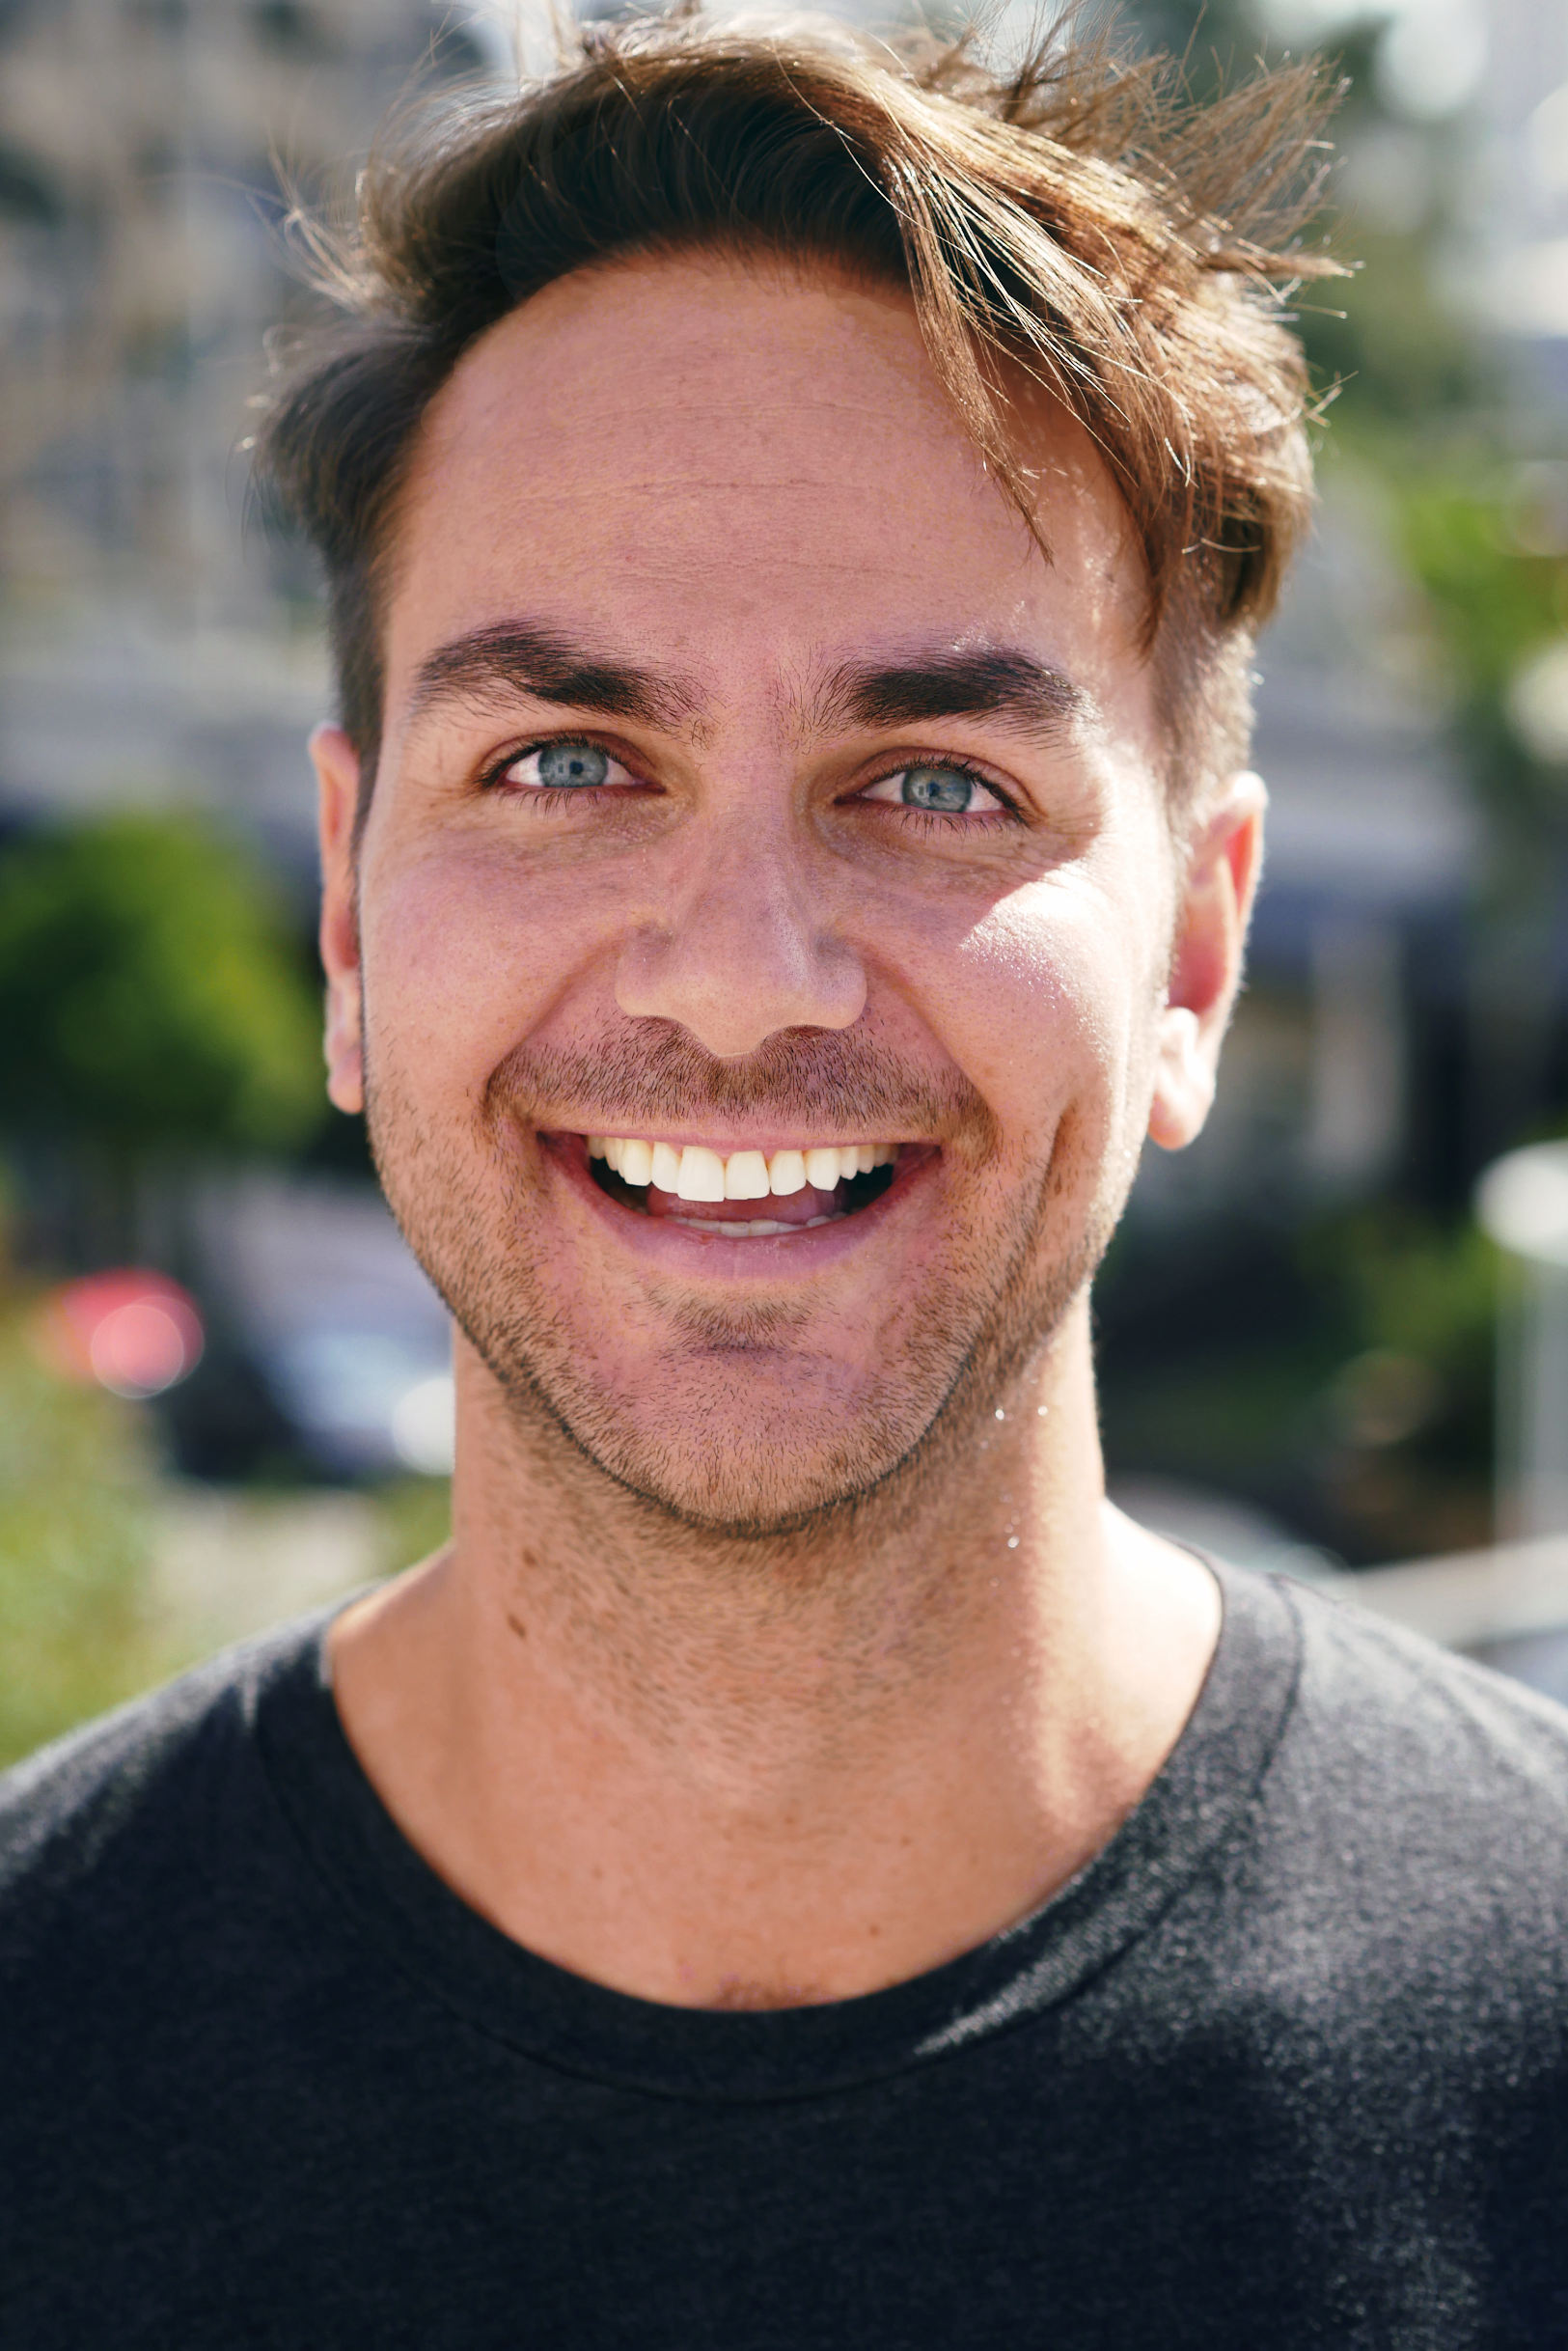 Meet Our Founder, Ant - Ant is a life loving, Bali living, fitness enthusiast with a passion for helping people create lives that feel fulfilling and enriching. MindFit Adventures is a culmination of his experiences and many loves - travel, connection, movement, personal development and of course, good food.